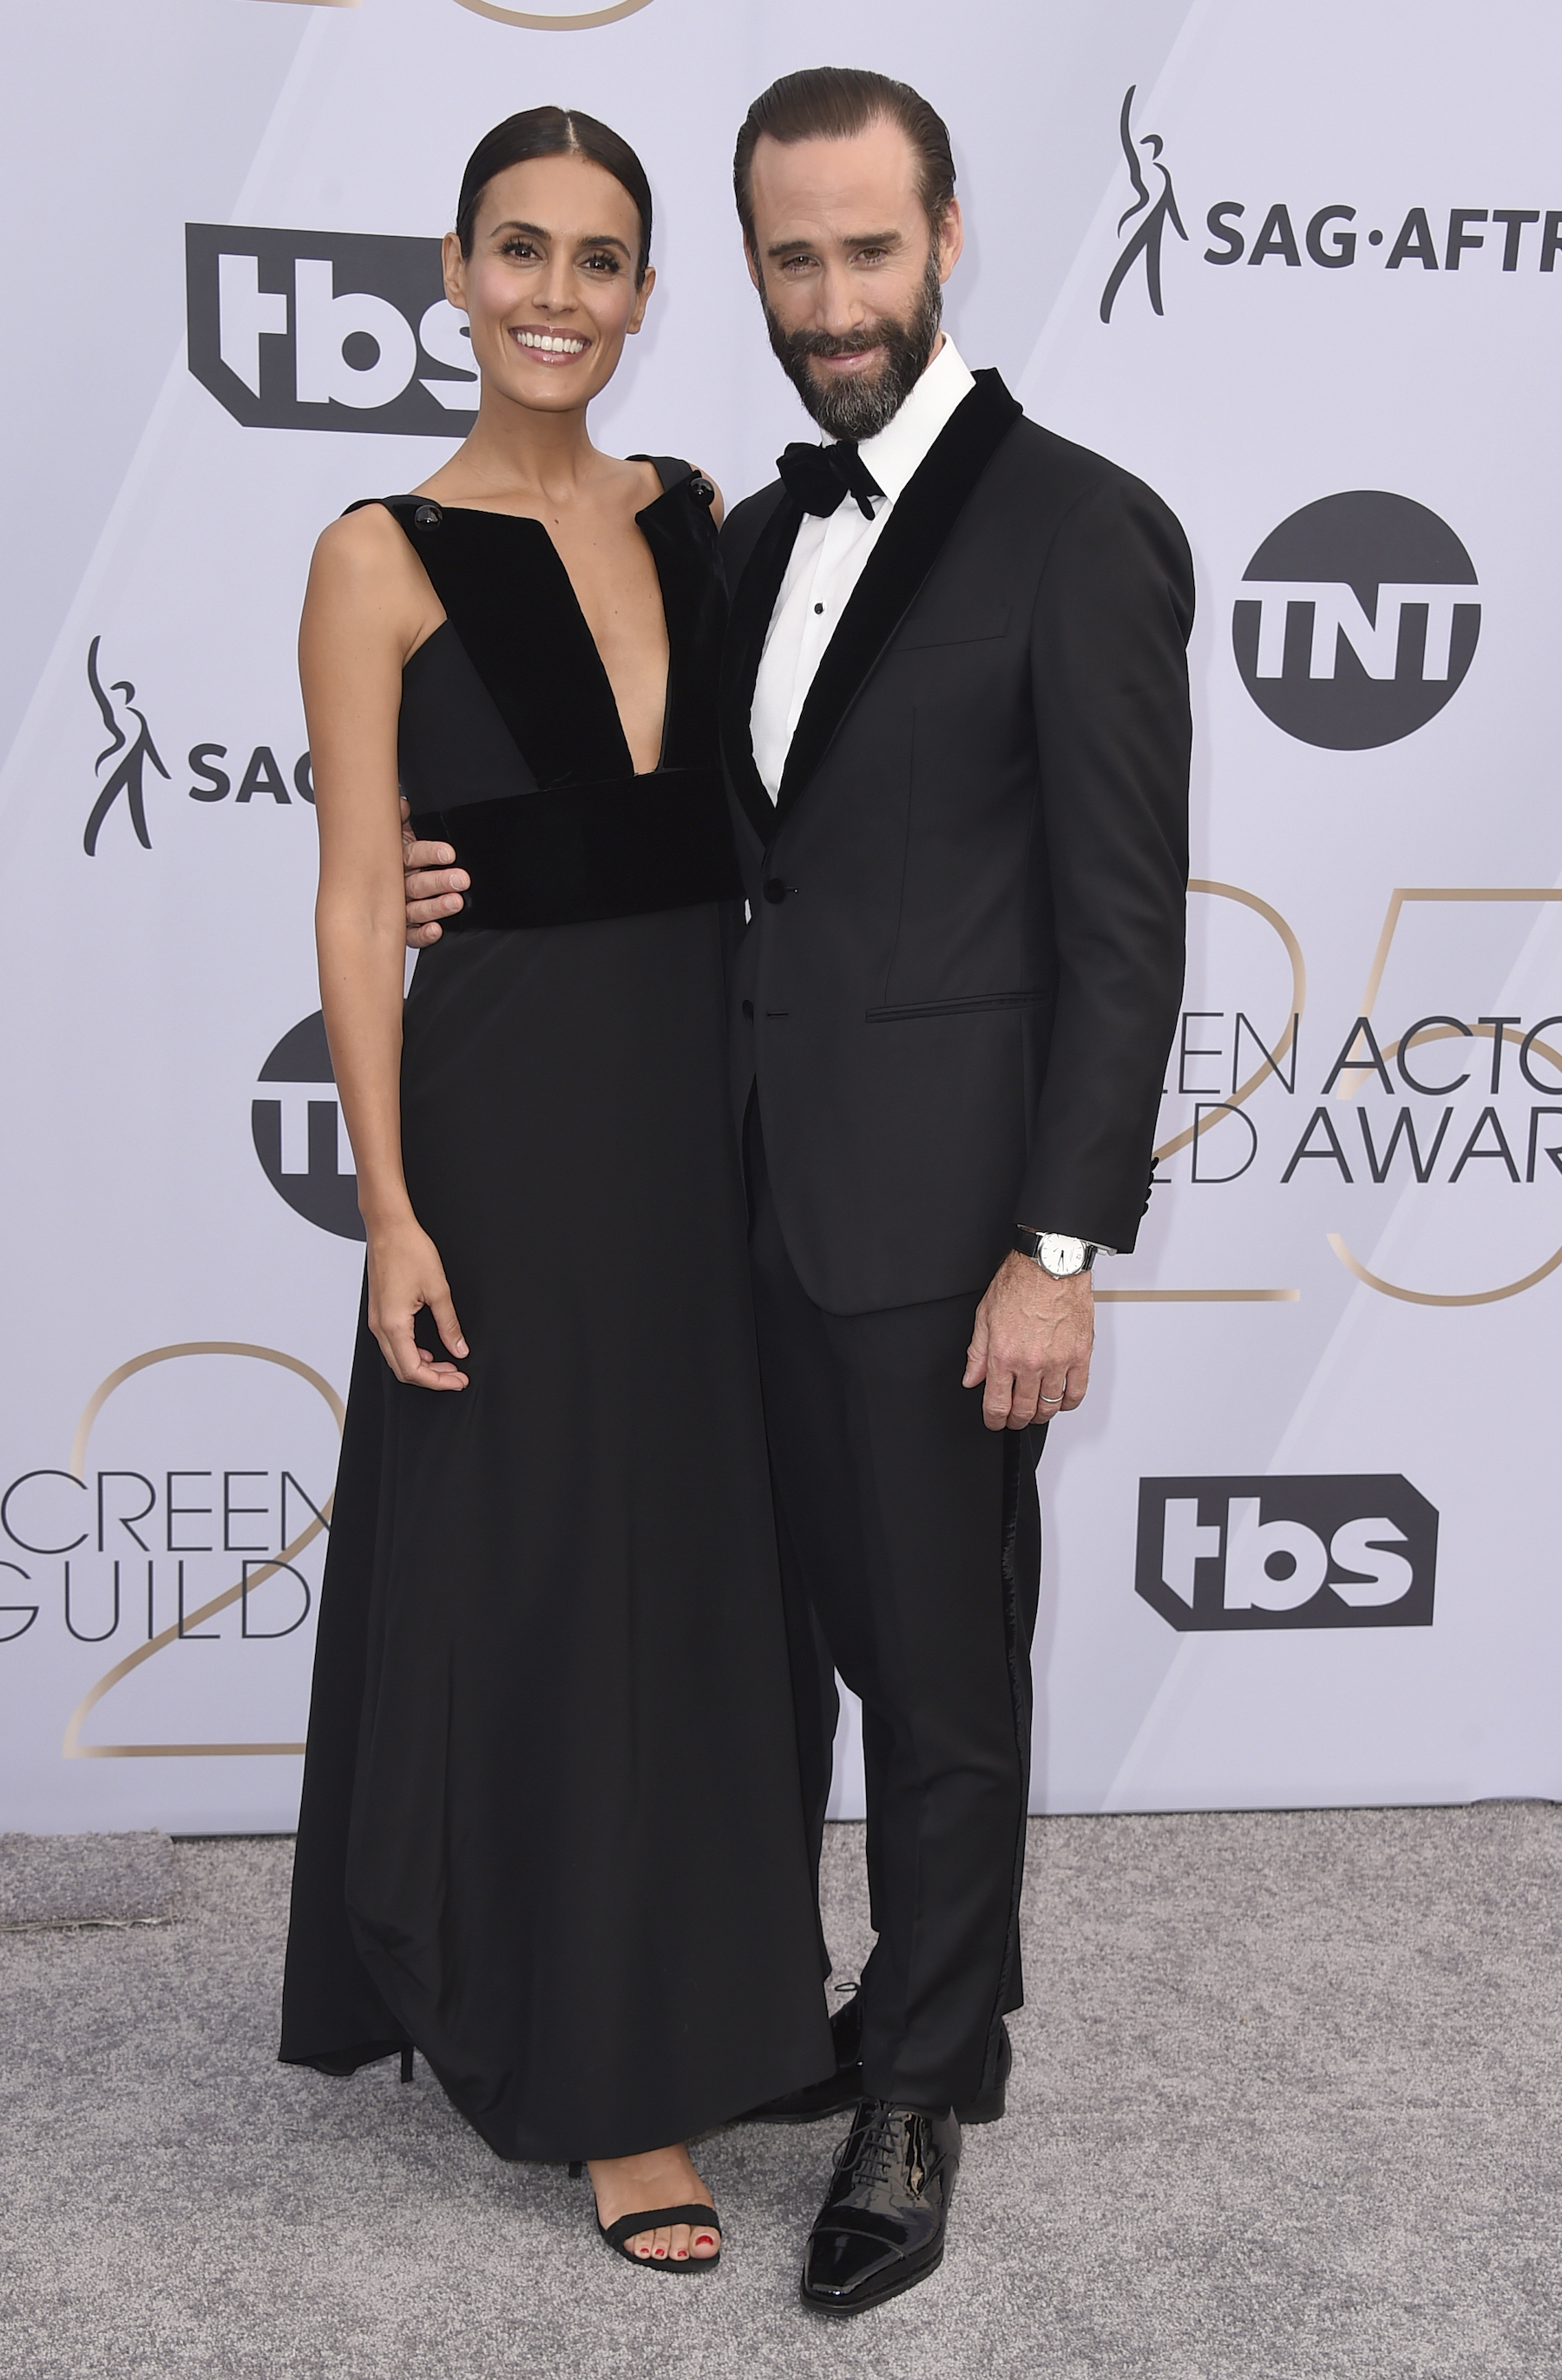 <div class='meta'><div class='origin-logo' data-origin='AP'></div><span class='caption-text' data-credit='Jordan Strauss/Invision/AP'>Maria Dolores Dieguez, left, and Joseph Fiennes arrive at the 25th annual Screen Actors Guild Awards at the Shrine Auditorium & Expo Hall on Sunday, Jan. 27, 2019, in Los Angeles.</span></div>